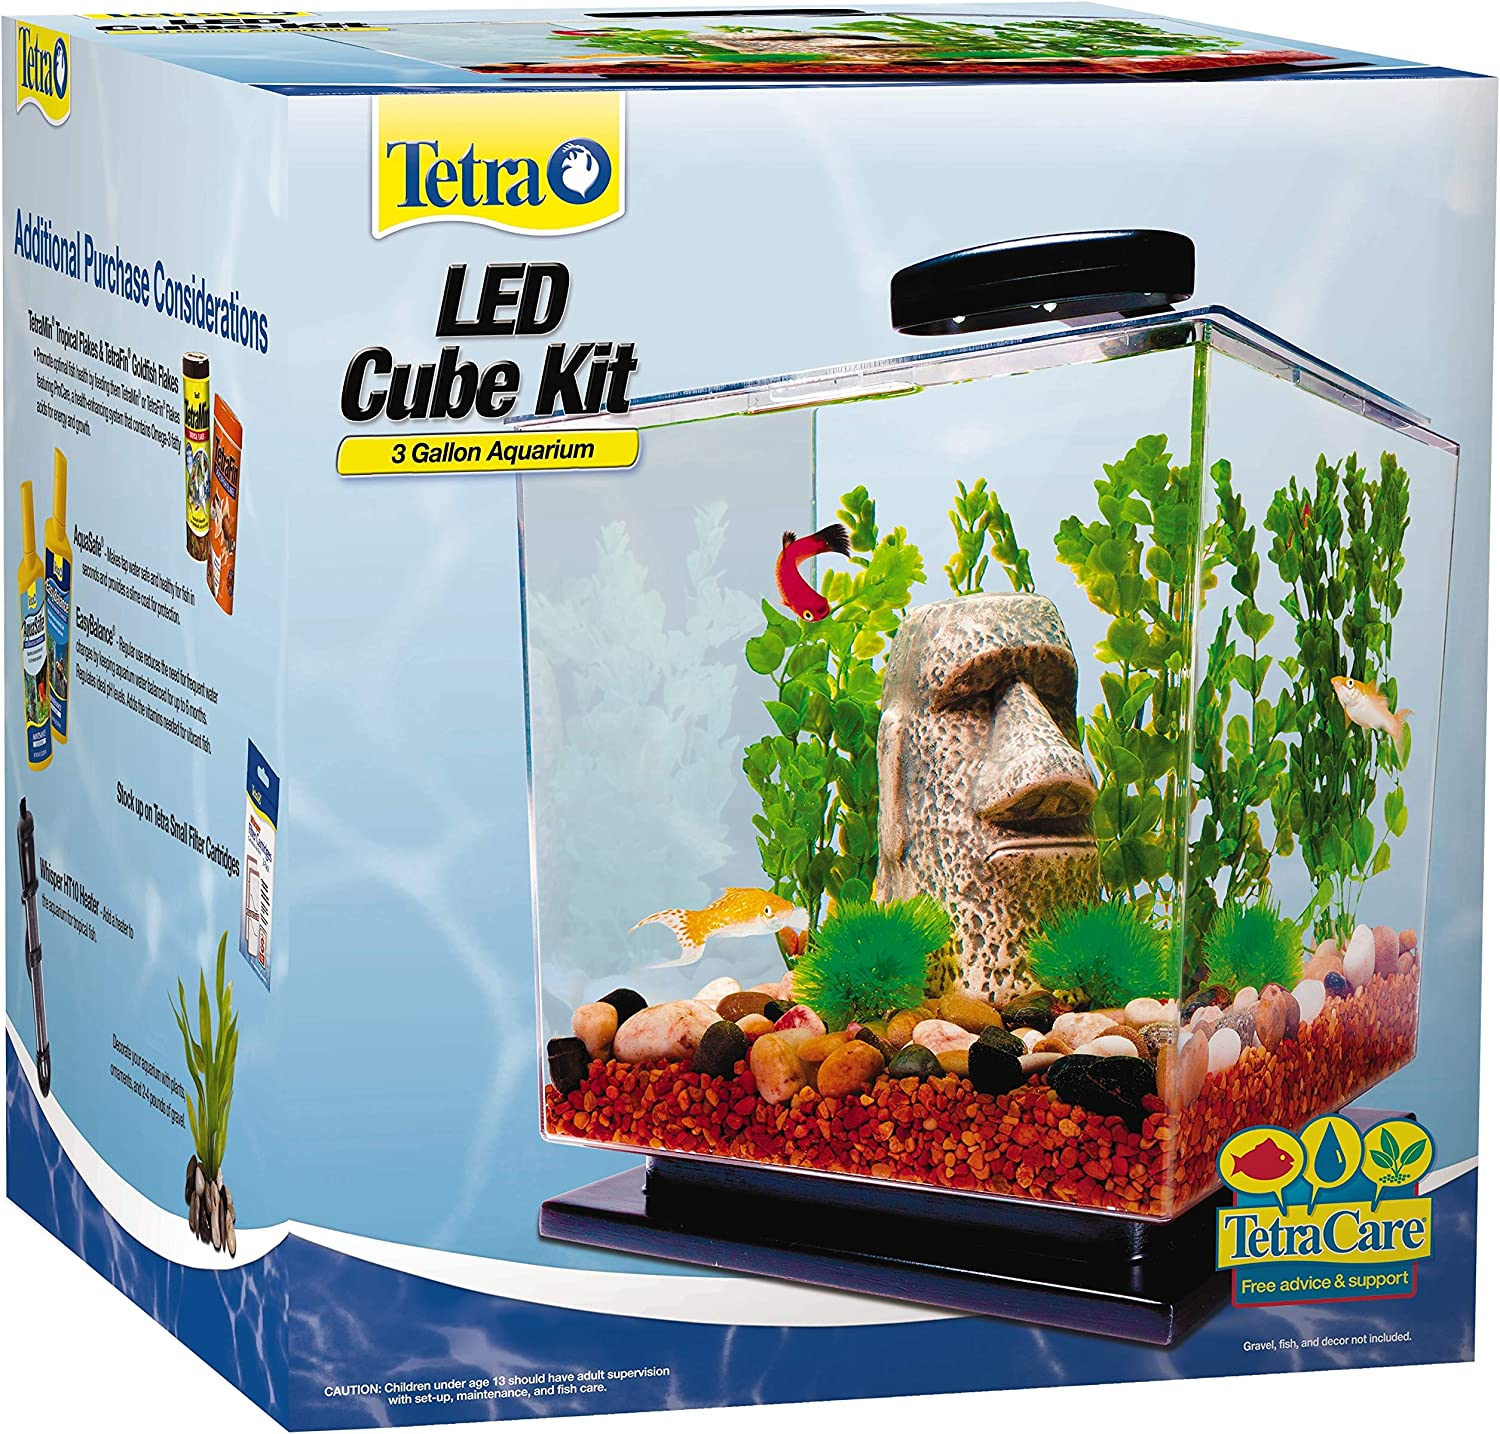 Tetra LED Cube Kit